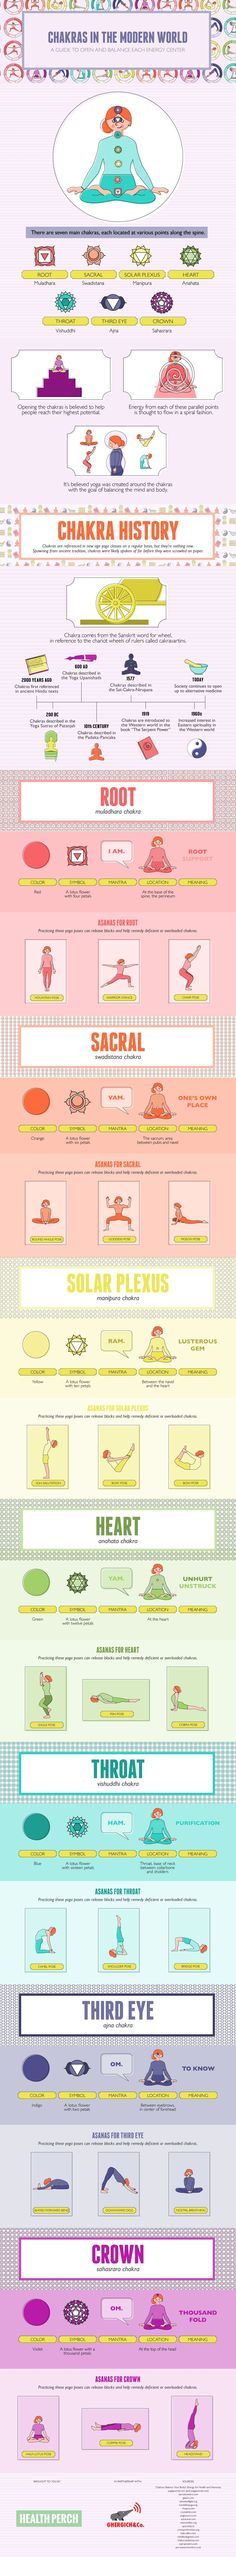 Chakras in the Modern World: a Guide to Open and Balance Each Energy Center [by Health Perch -- via #tipsographic]. More at tipsographic.com